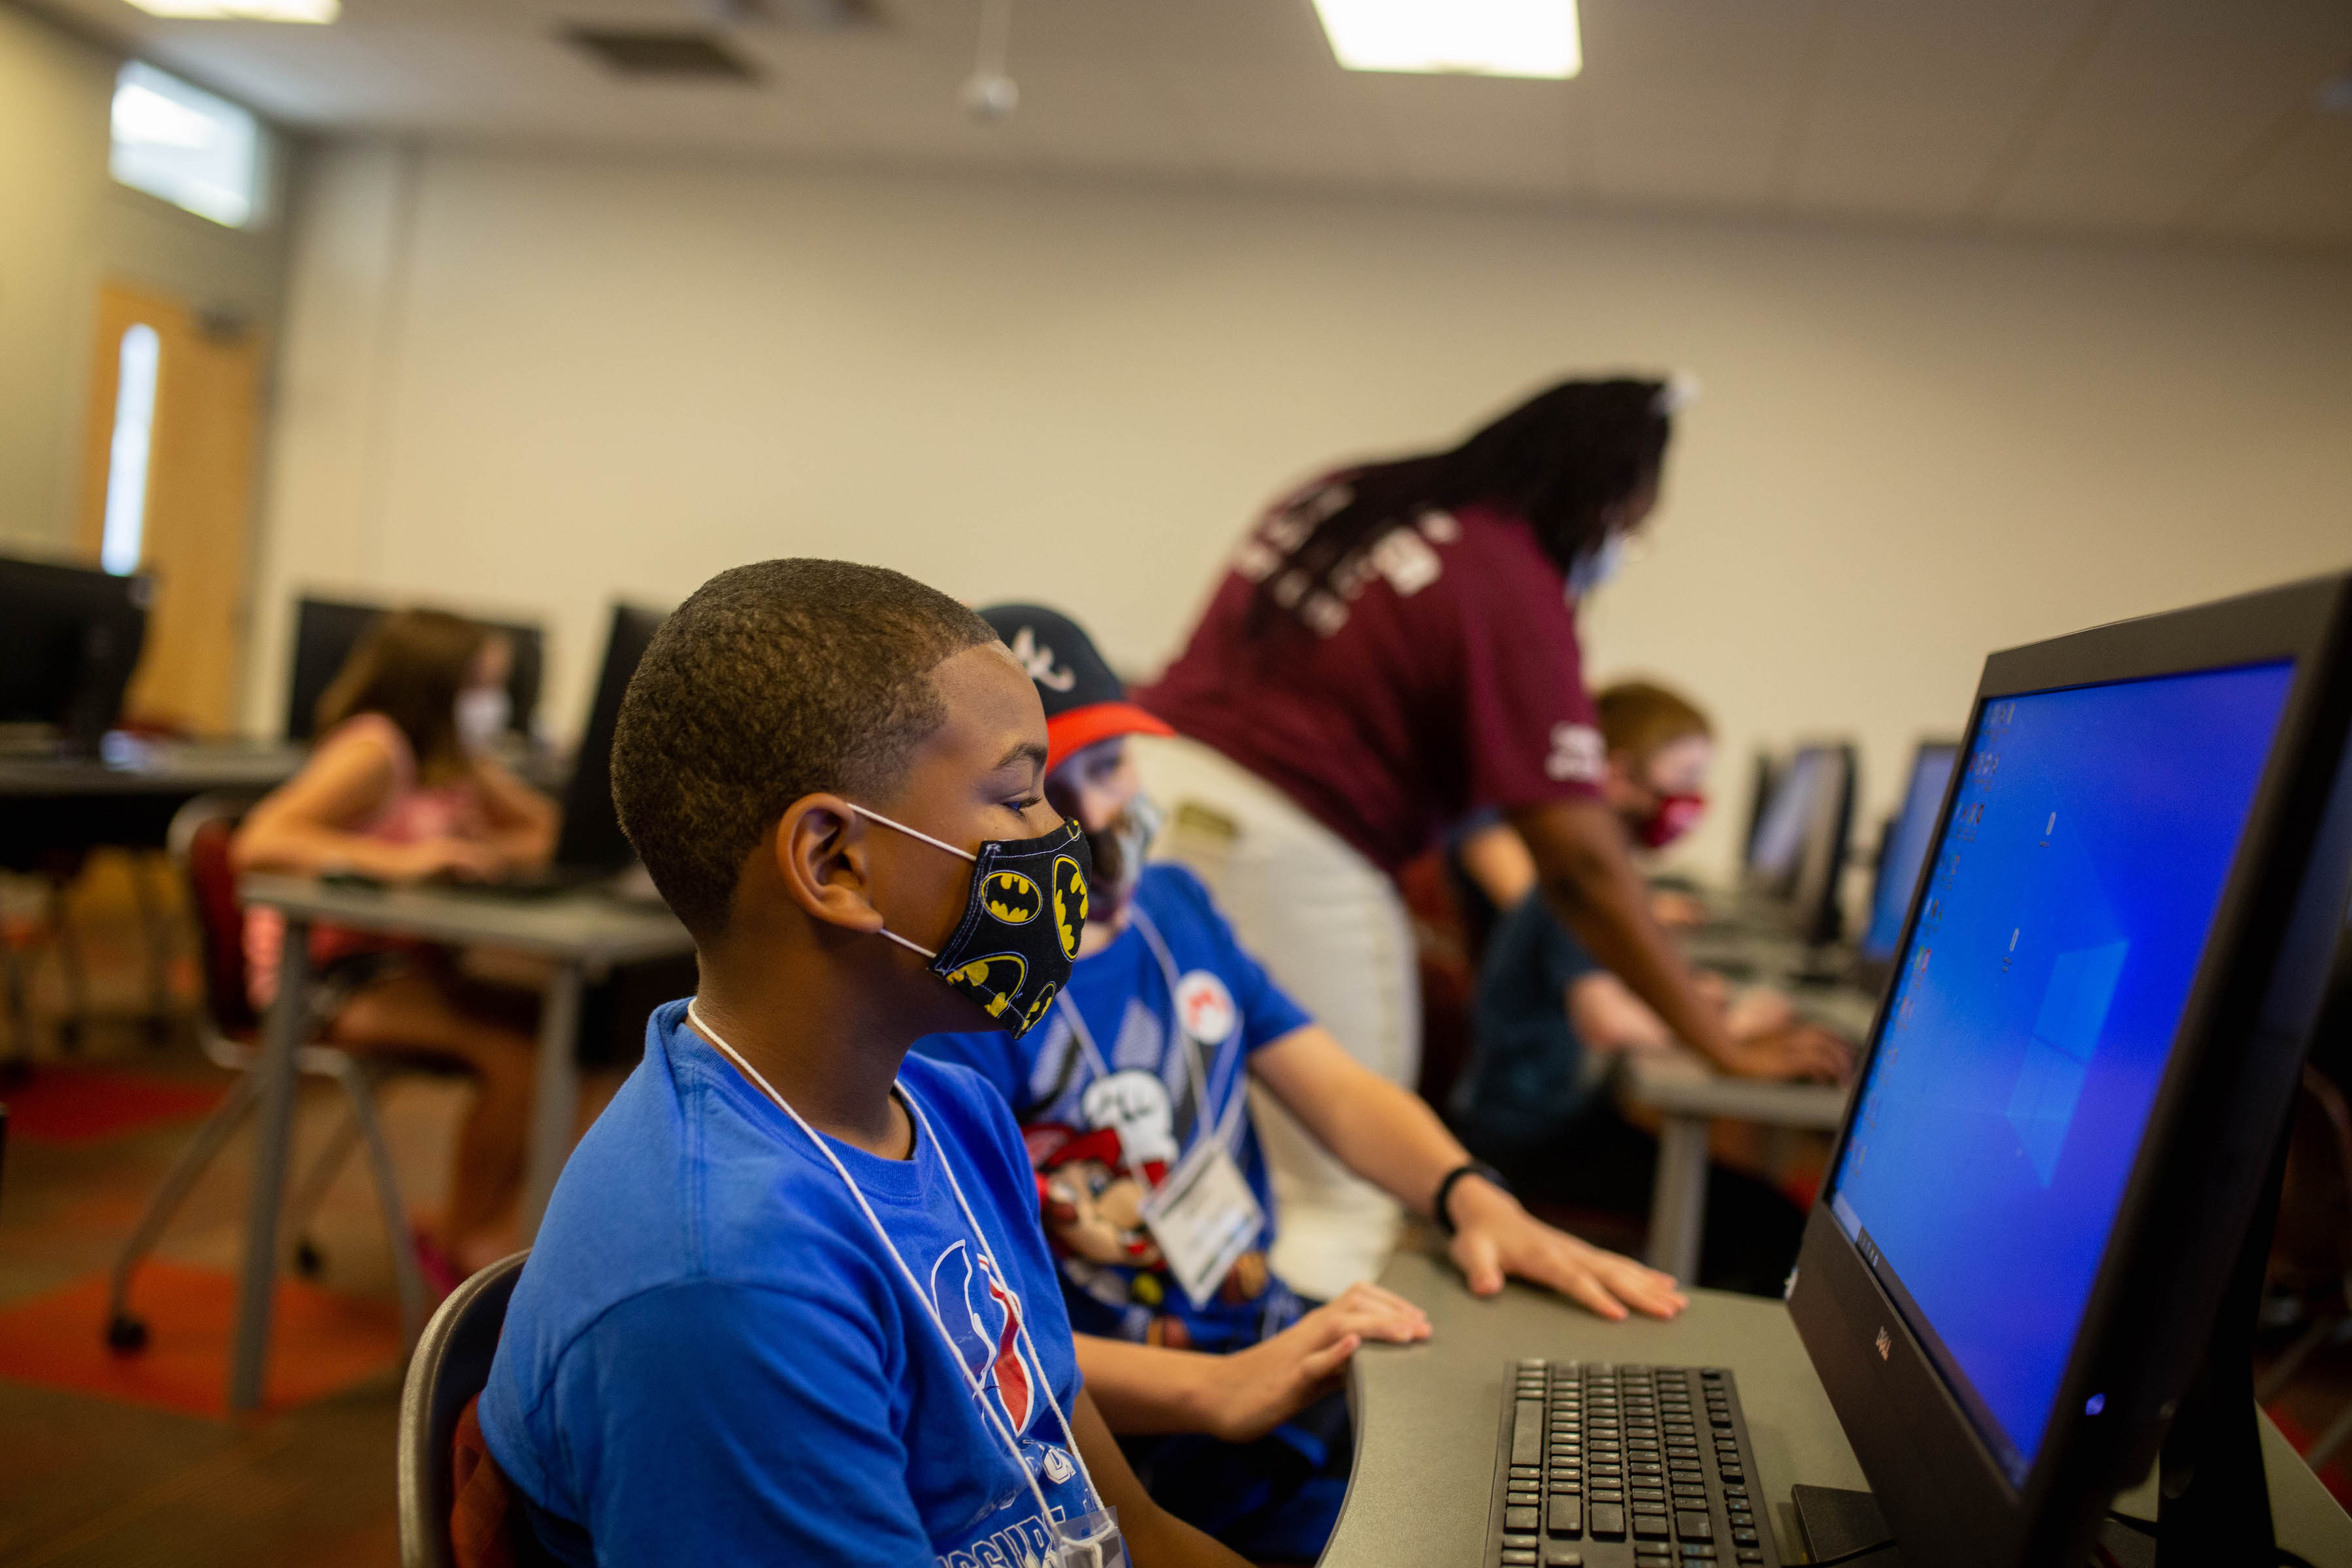 Middle schoolers learn how to make their own websites, video games at Austin Peay coding camps